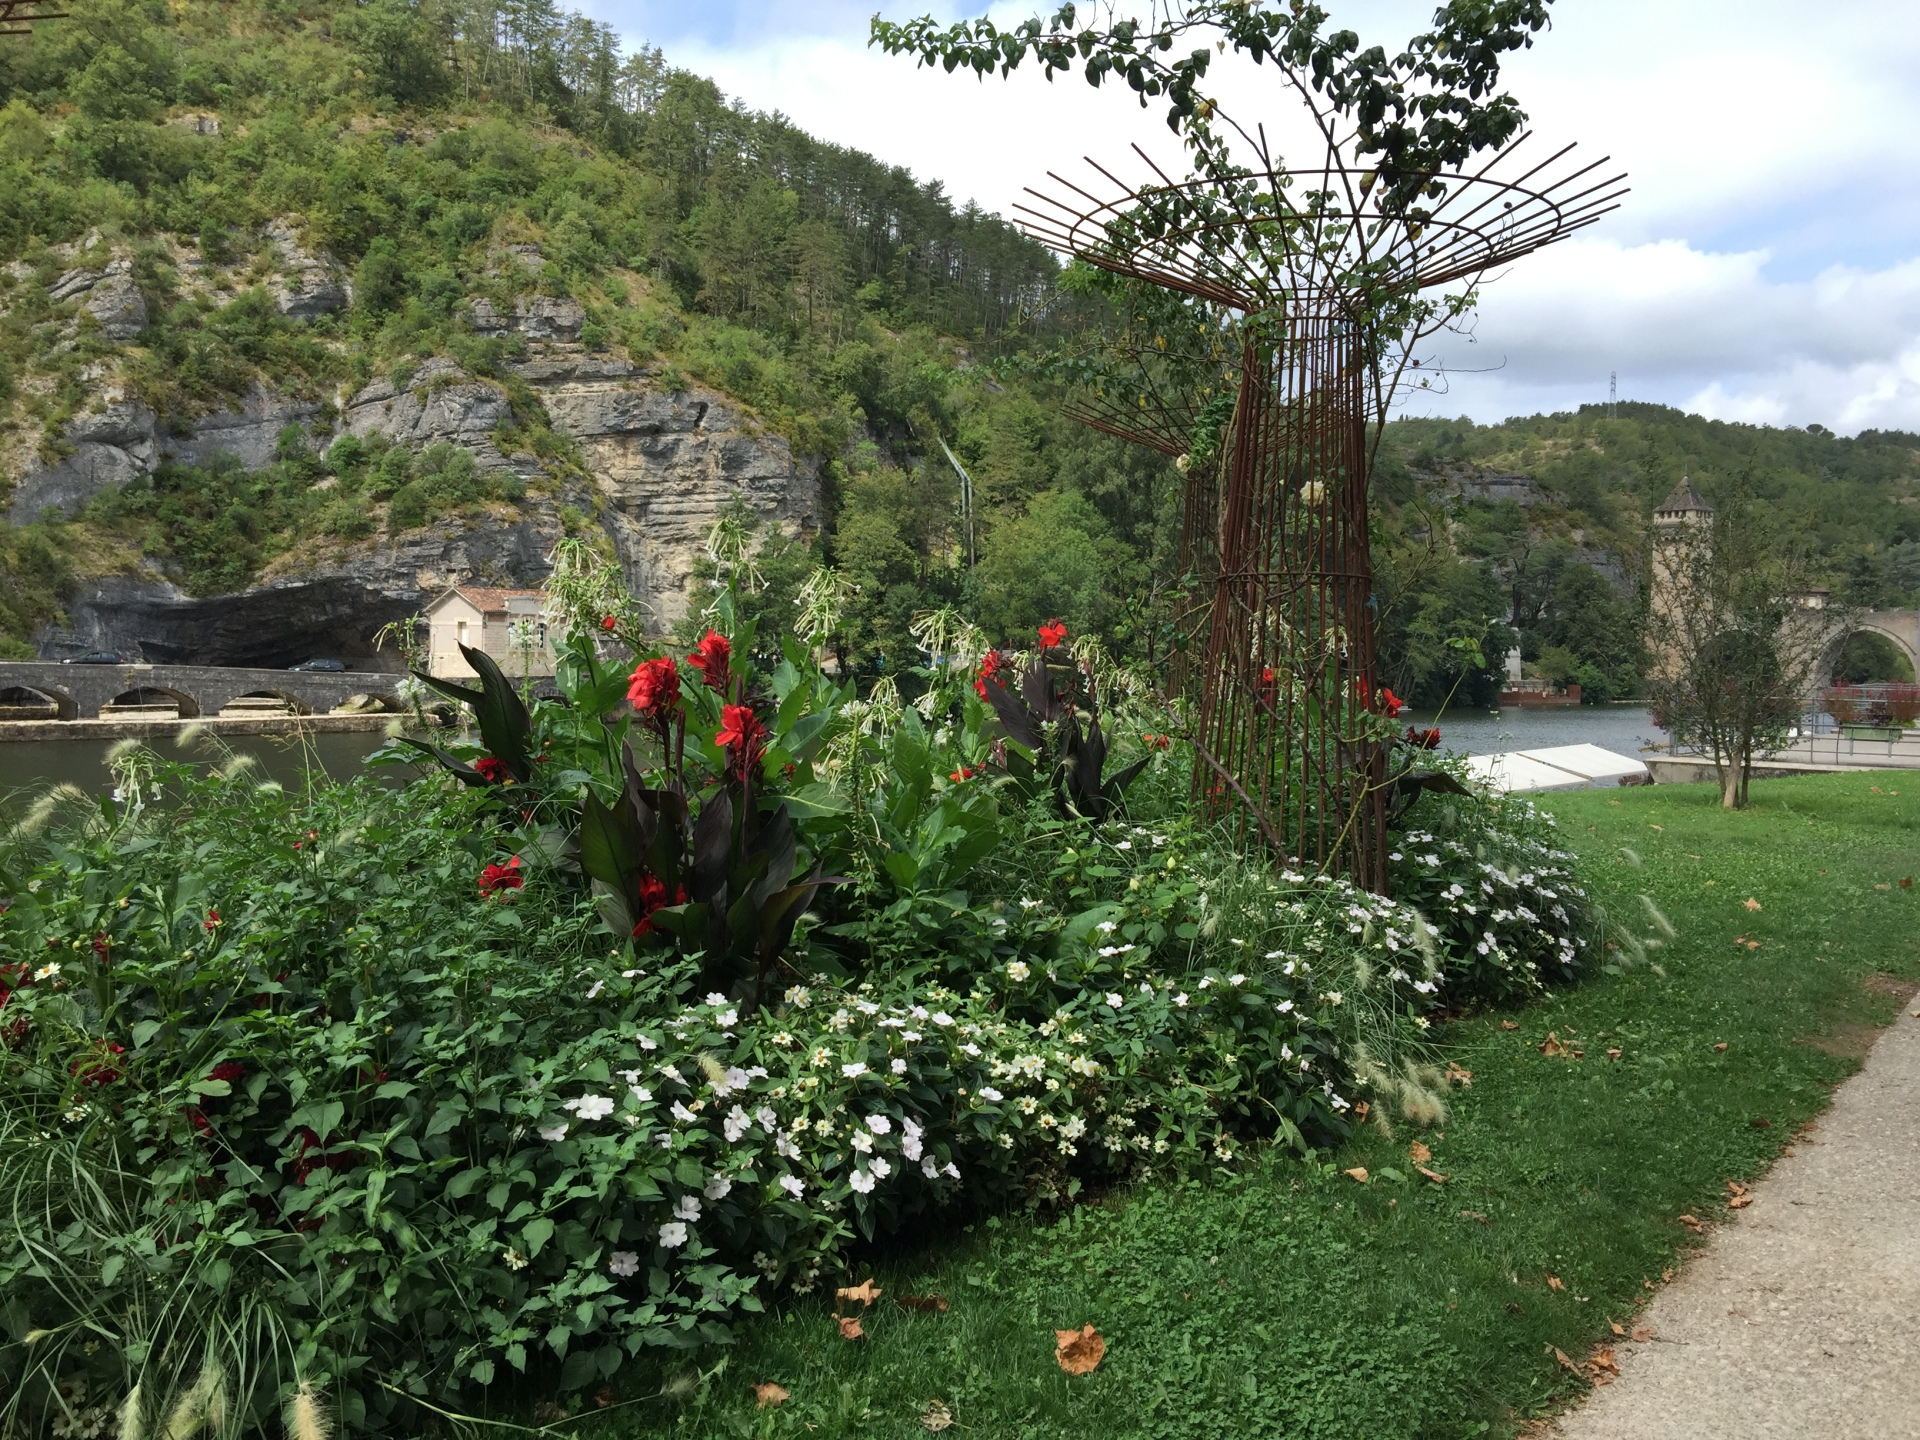 One of the many beautiful flower beds on the banks of the river Lot, Cahors